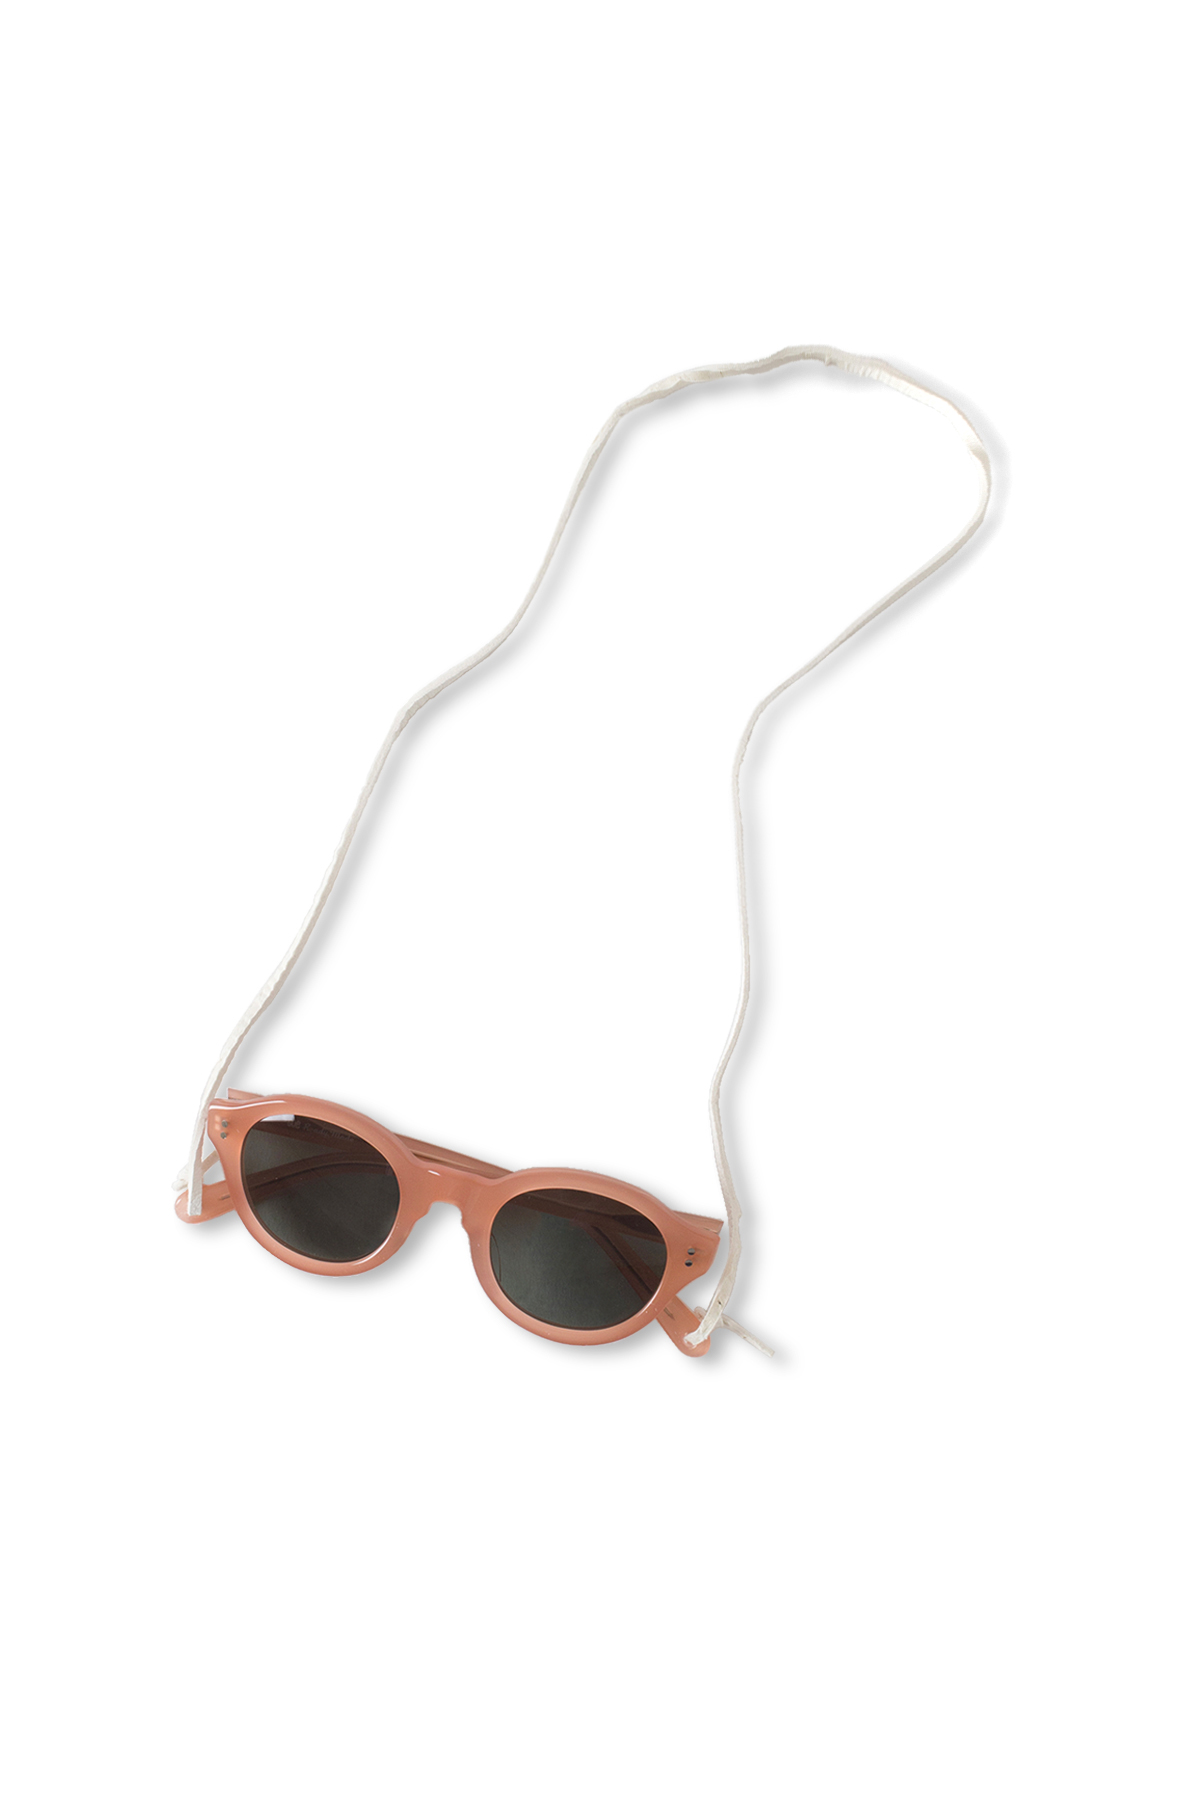 soe : Sunglasses With Leather Holder (Pink)